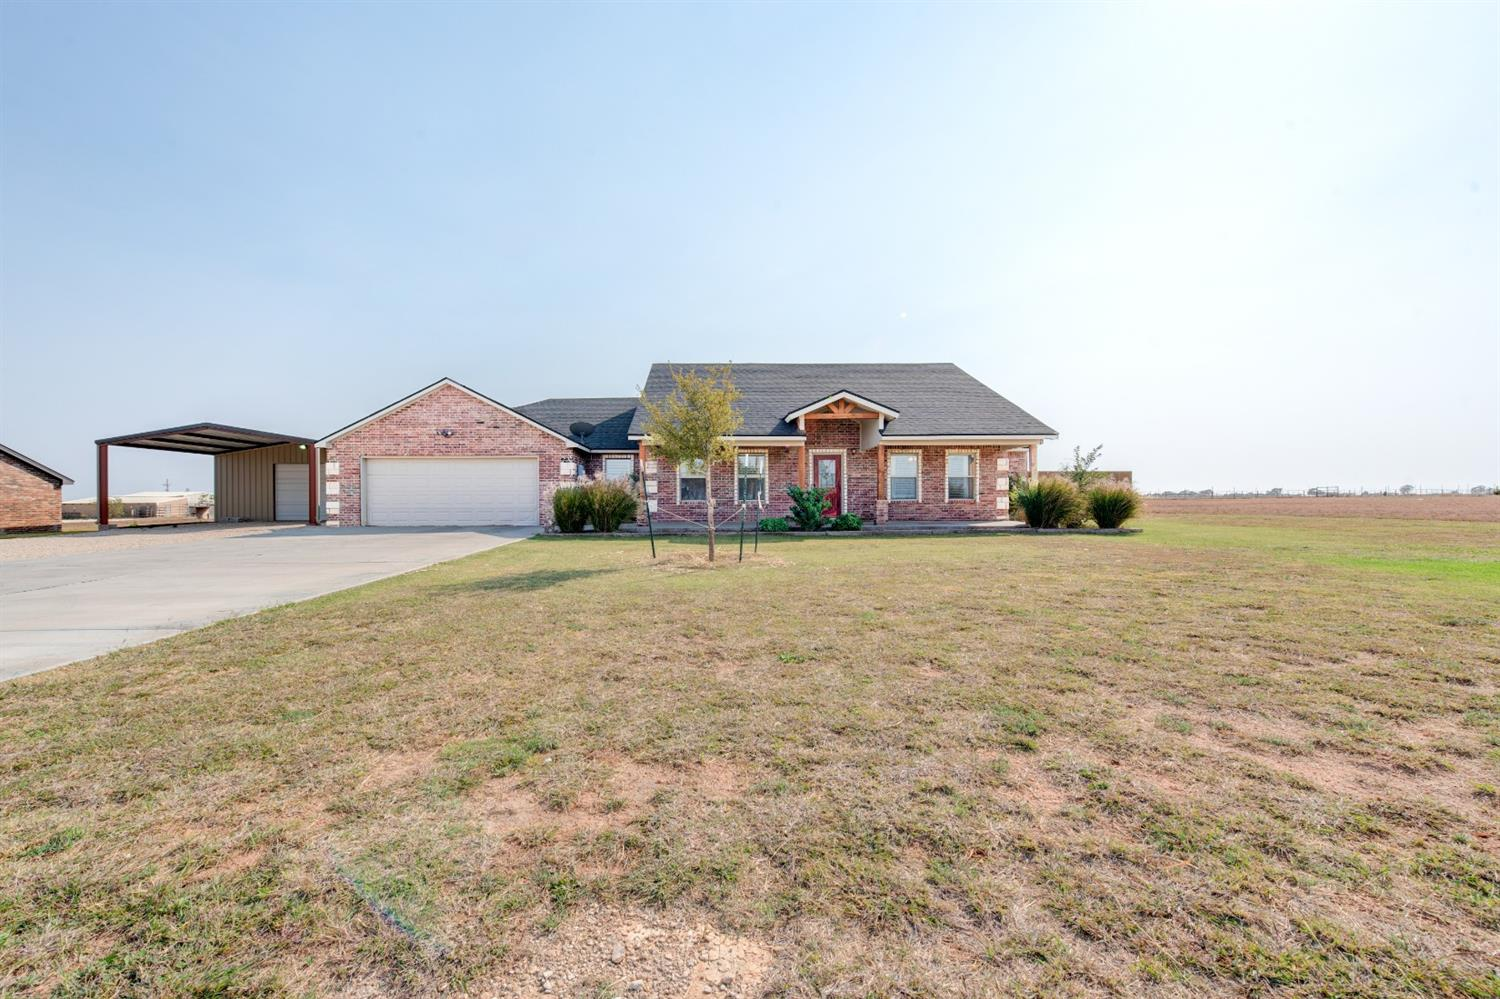 Shallowater ISD, 1 acre lot, 30x40 insulated shop, 4 bedrooms and 2.5 bathrooms. This home was built in 2016 and is an extremely rare find in our market today! Located in one of the best school districts in the State of Texas, this home is turnkey and move in ready. Some of the amenities include: open layout, vinyl plank flooring, entire property fenced, and an excellent well. The property is situated in the North South fashion, so you get great sunlight throughout the year. The massive back patio is perfect for entertaining or just enjoying a West Texas evening. Come see this one before it's gone!